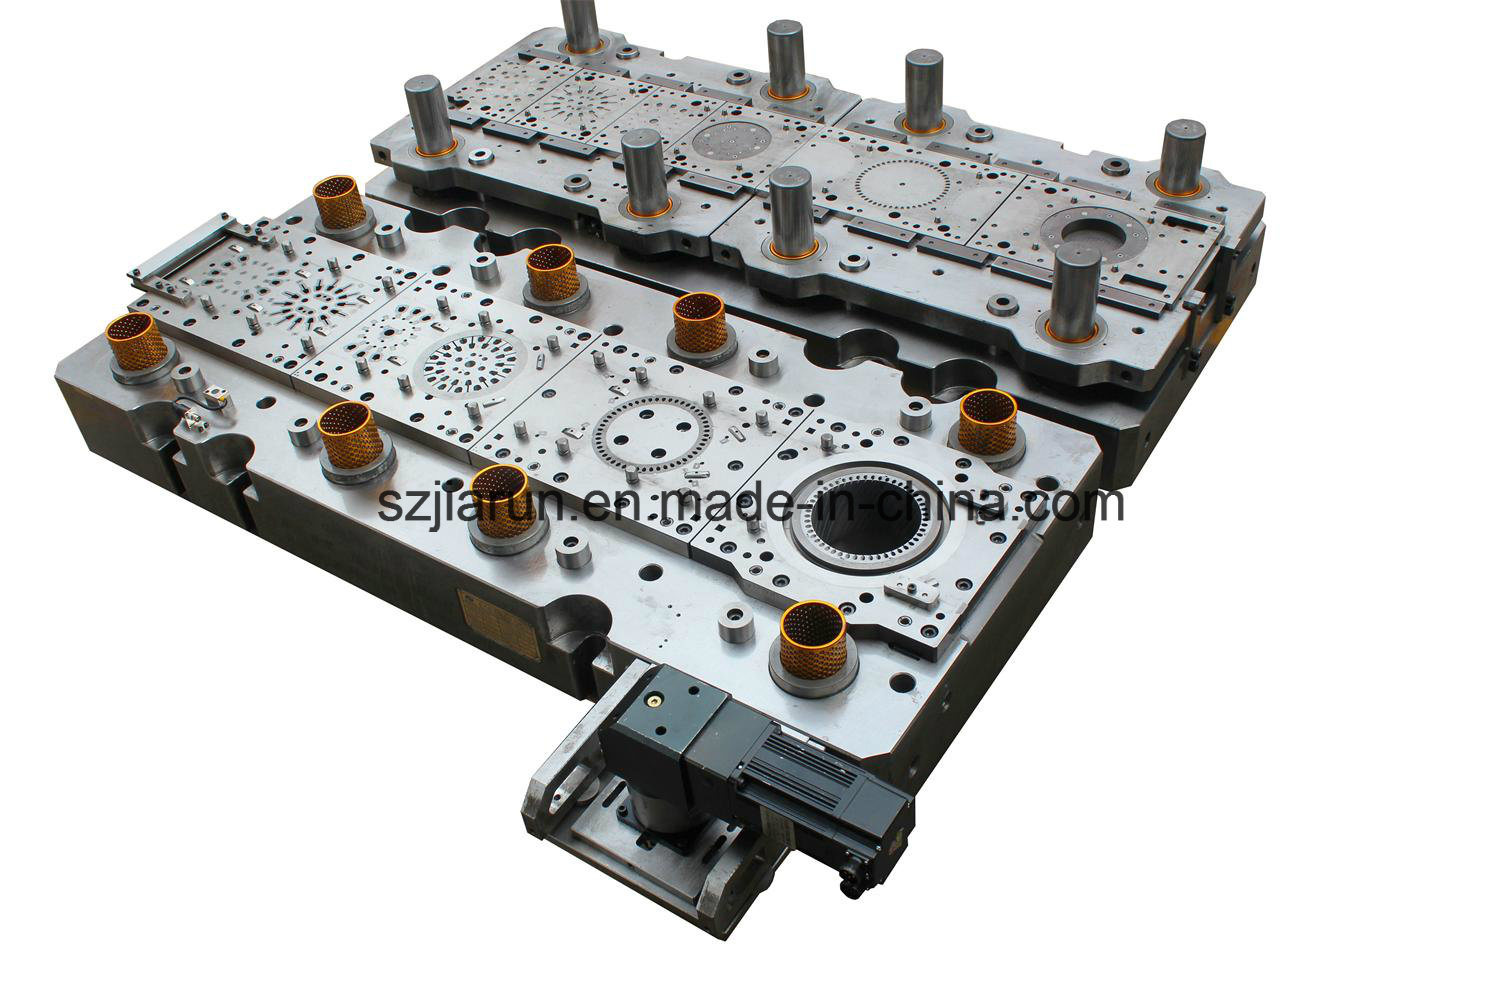 Ceiling Fan Motor Rotor Srator Progressive Stamping Die/Mould and Tool